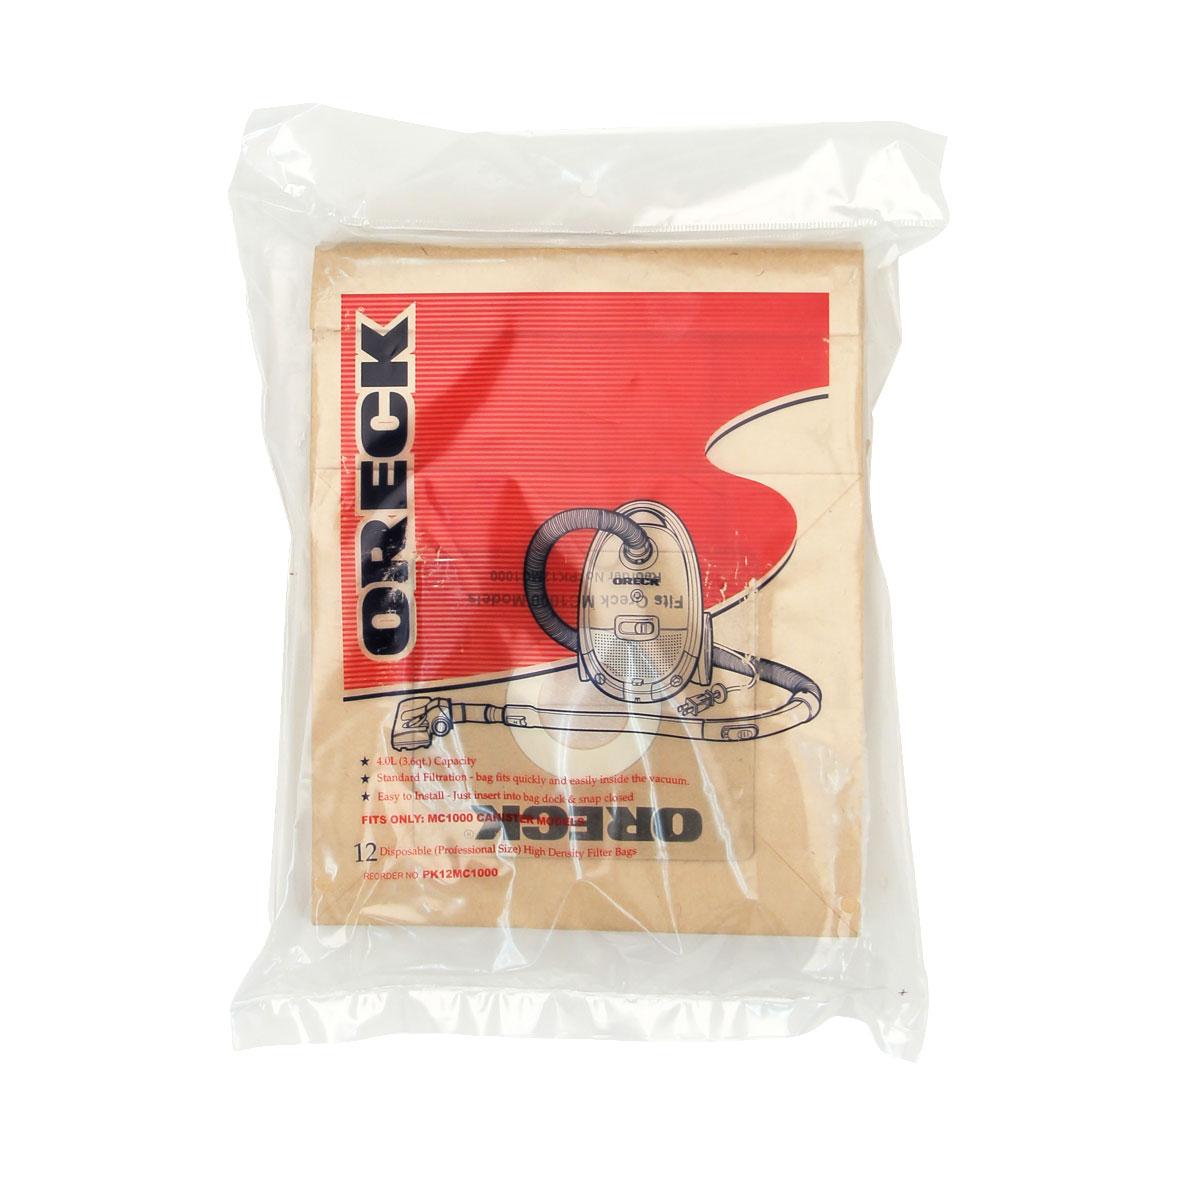 Oreck Pk12mc1000 High Density Quest Vacuum Cleaner Bags